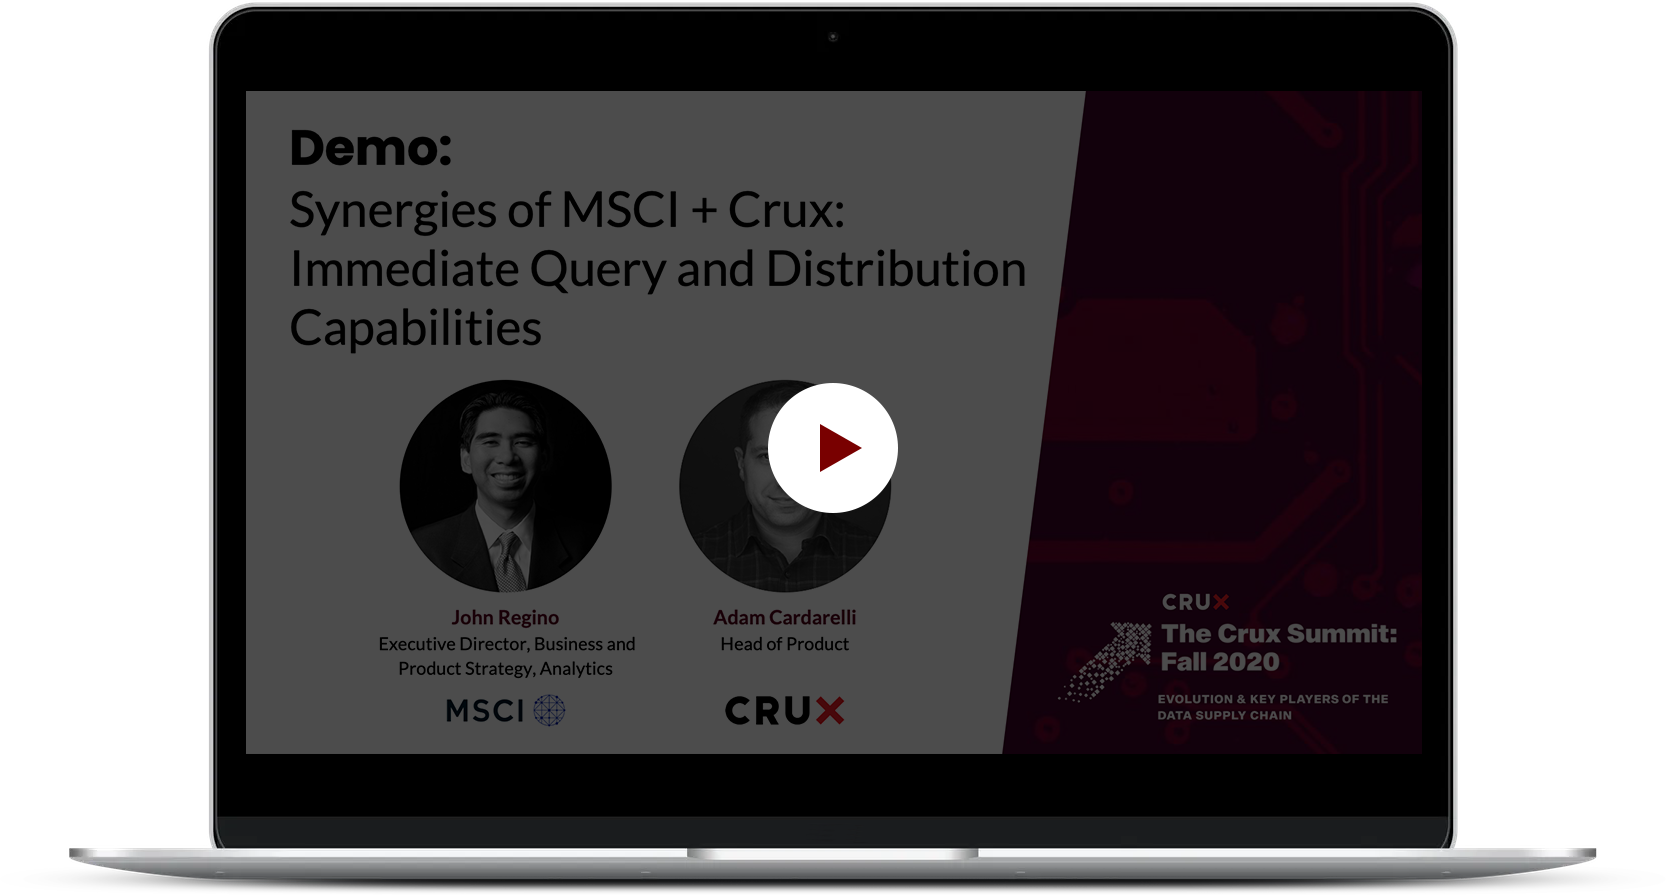 Crux_TCS_Demo+SynergiesMSCI_Crux+ImmediateQueryDistributionCapabilities_03